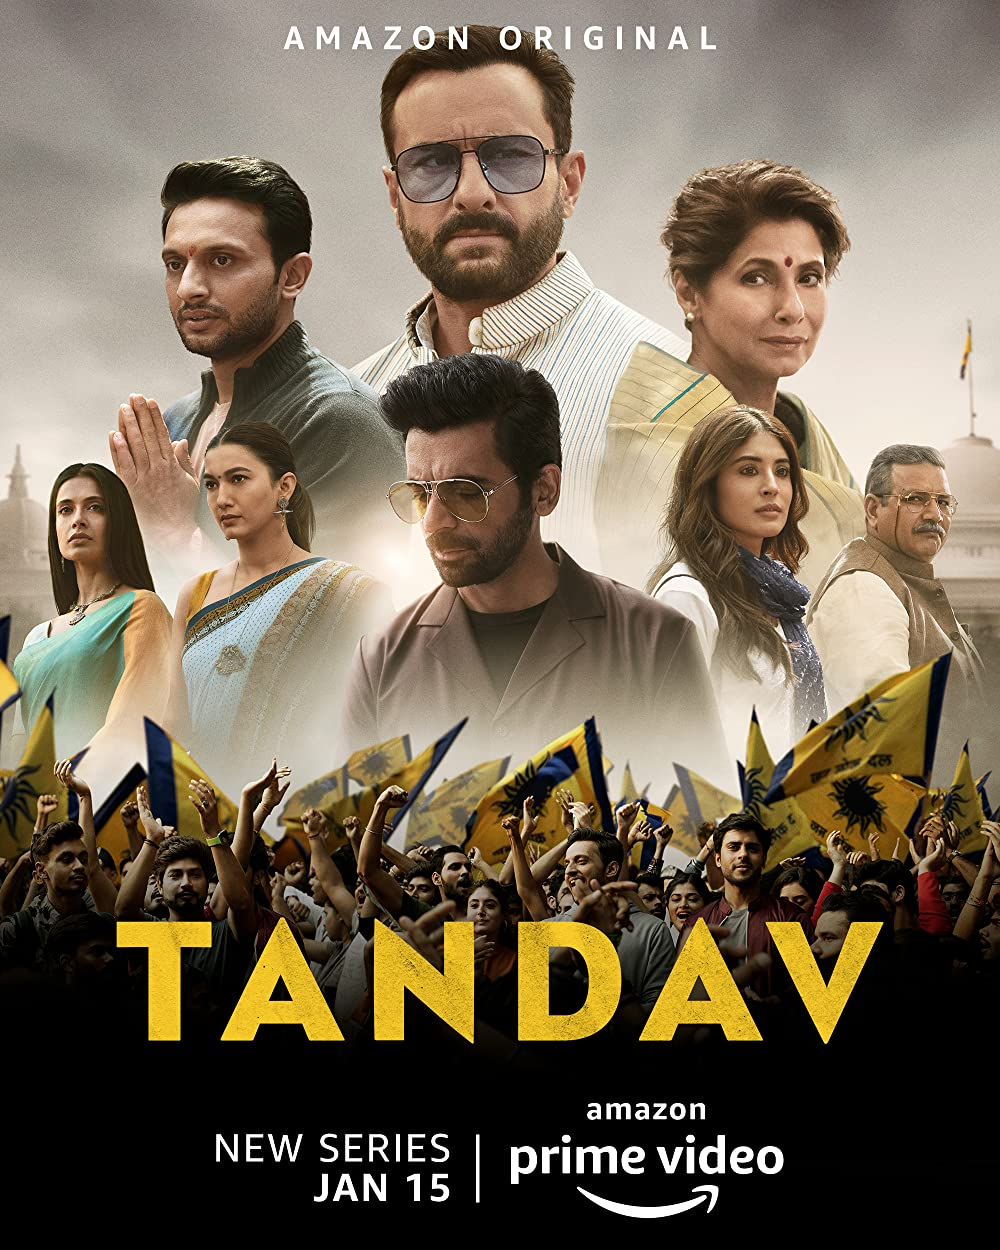 Tandav S01 2021 Hindi Amazon Original Complete Web Series 480p HDRip 960MB Download